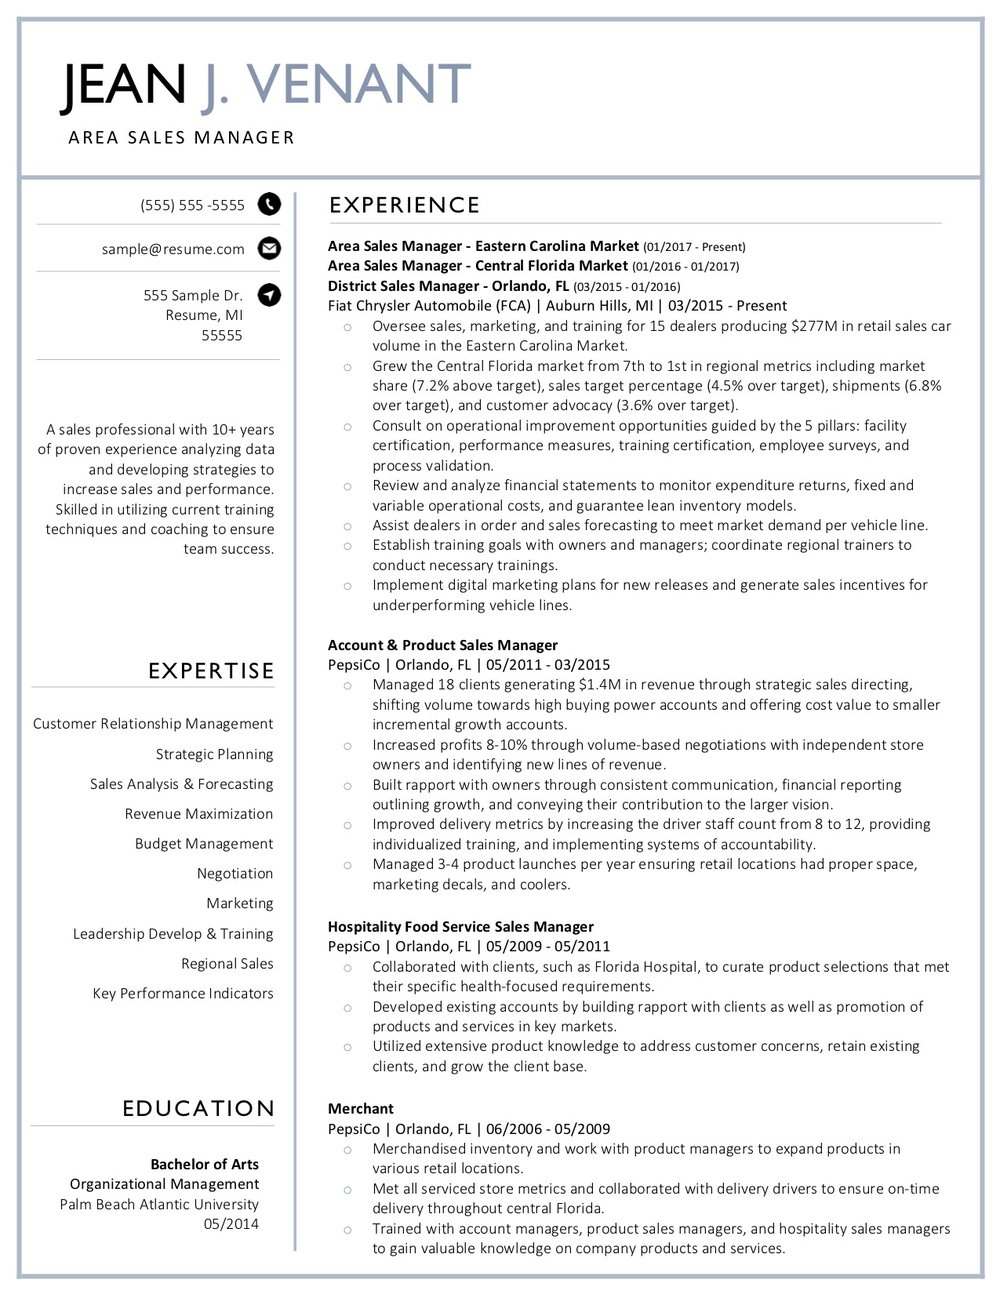 Client Resume #31. Click to Enlarge.